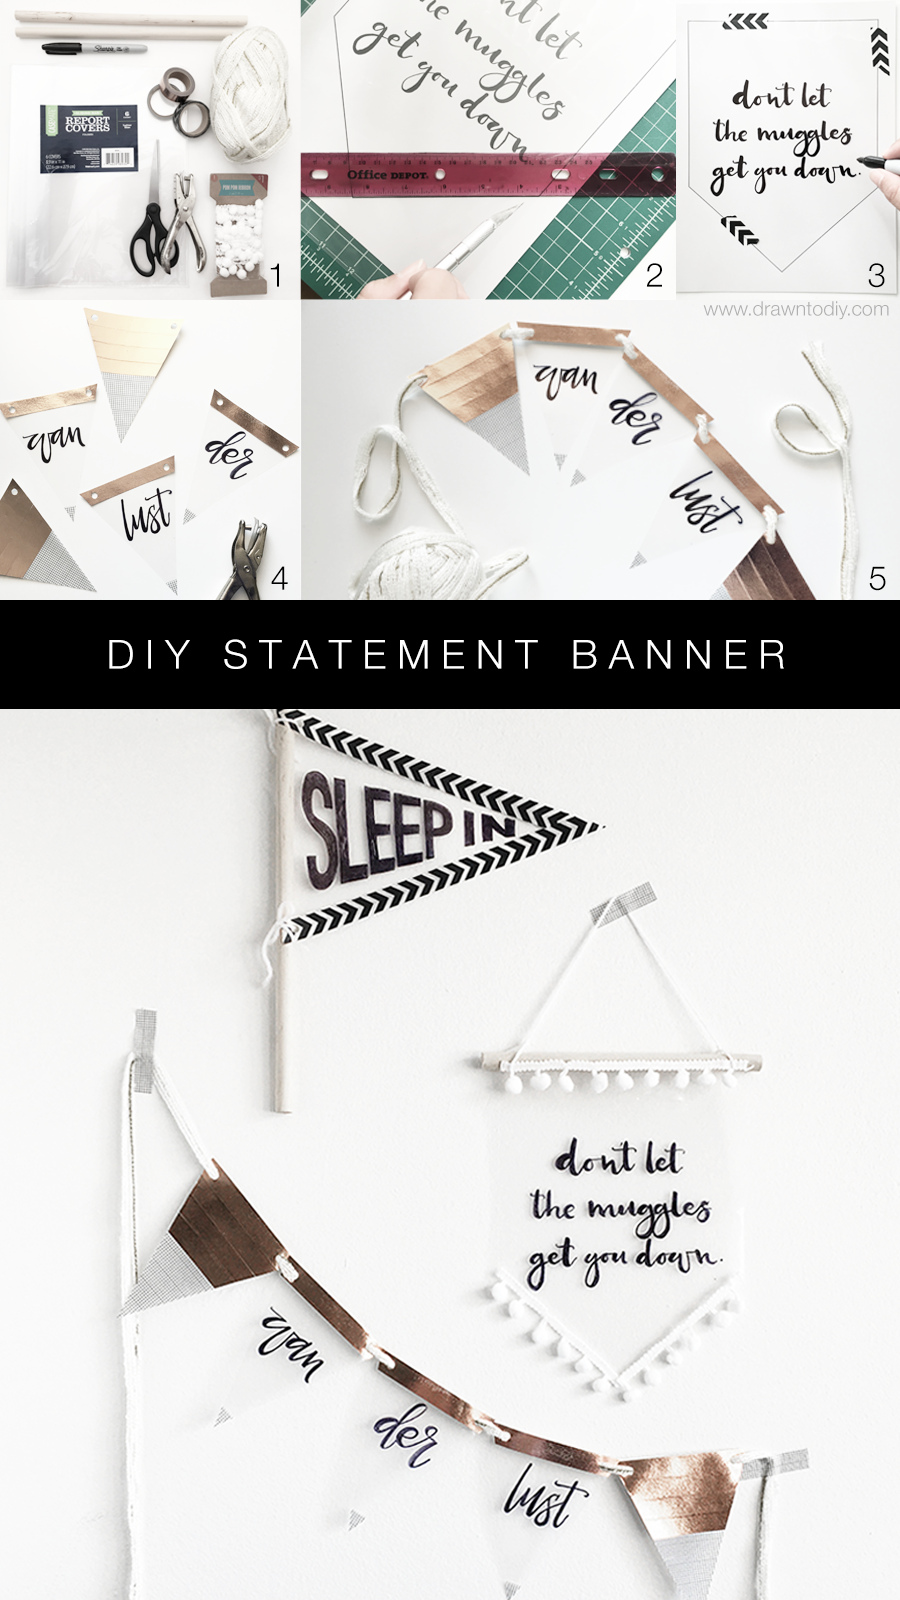 diy-statement-banner-by-drawn-to-diy-05